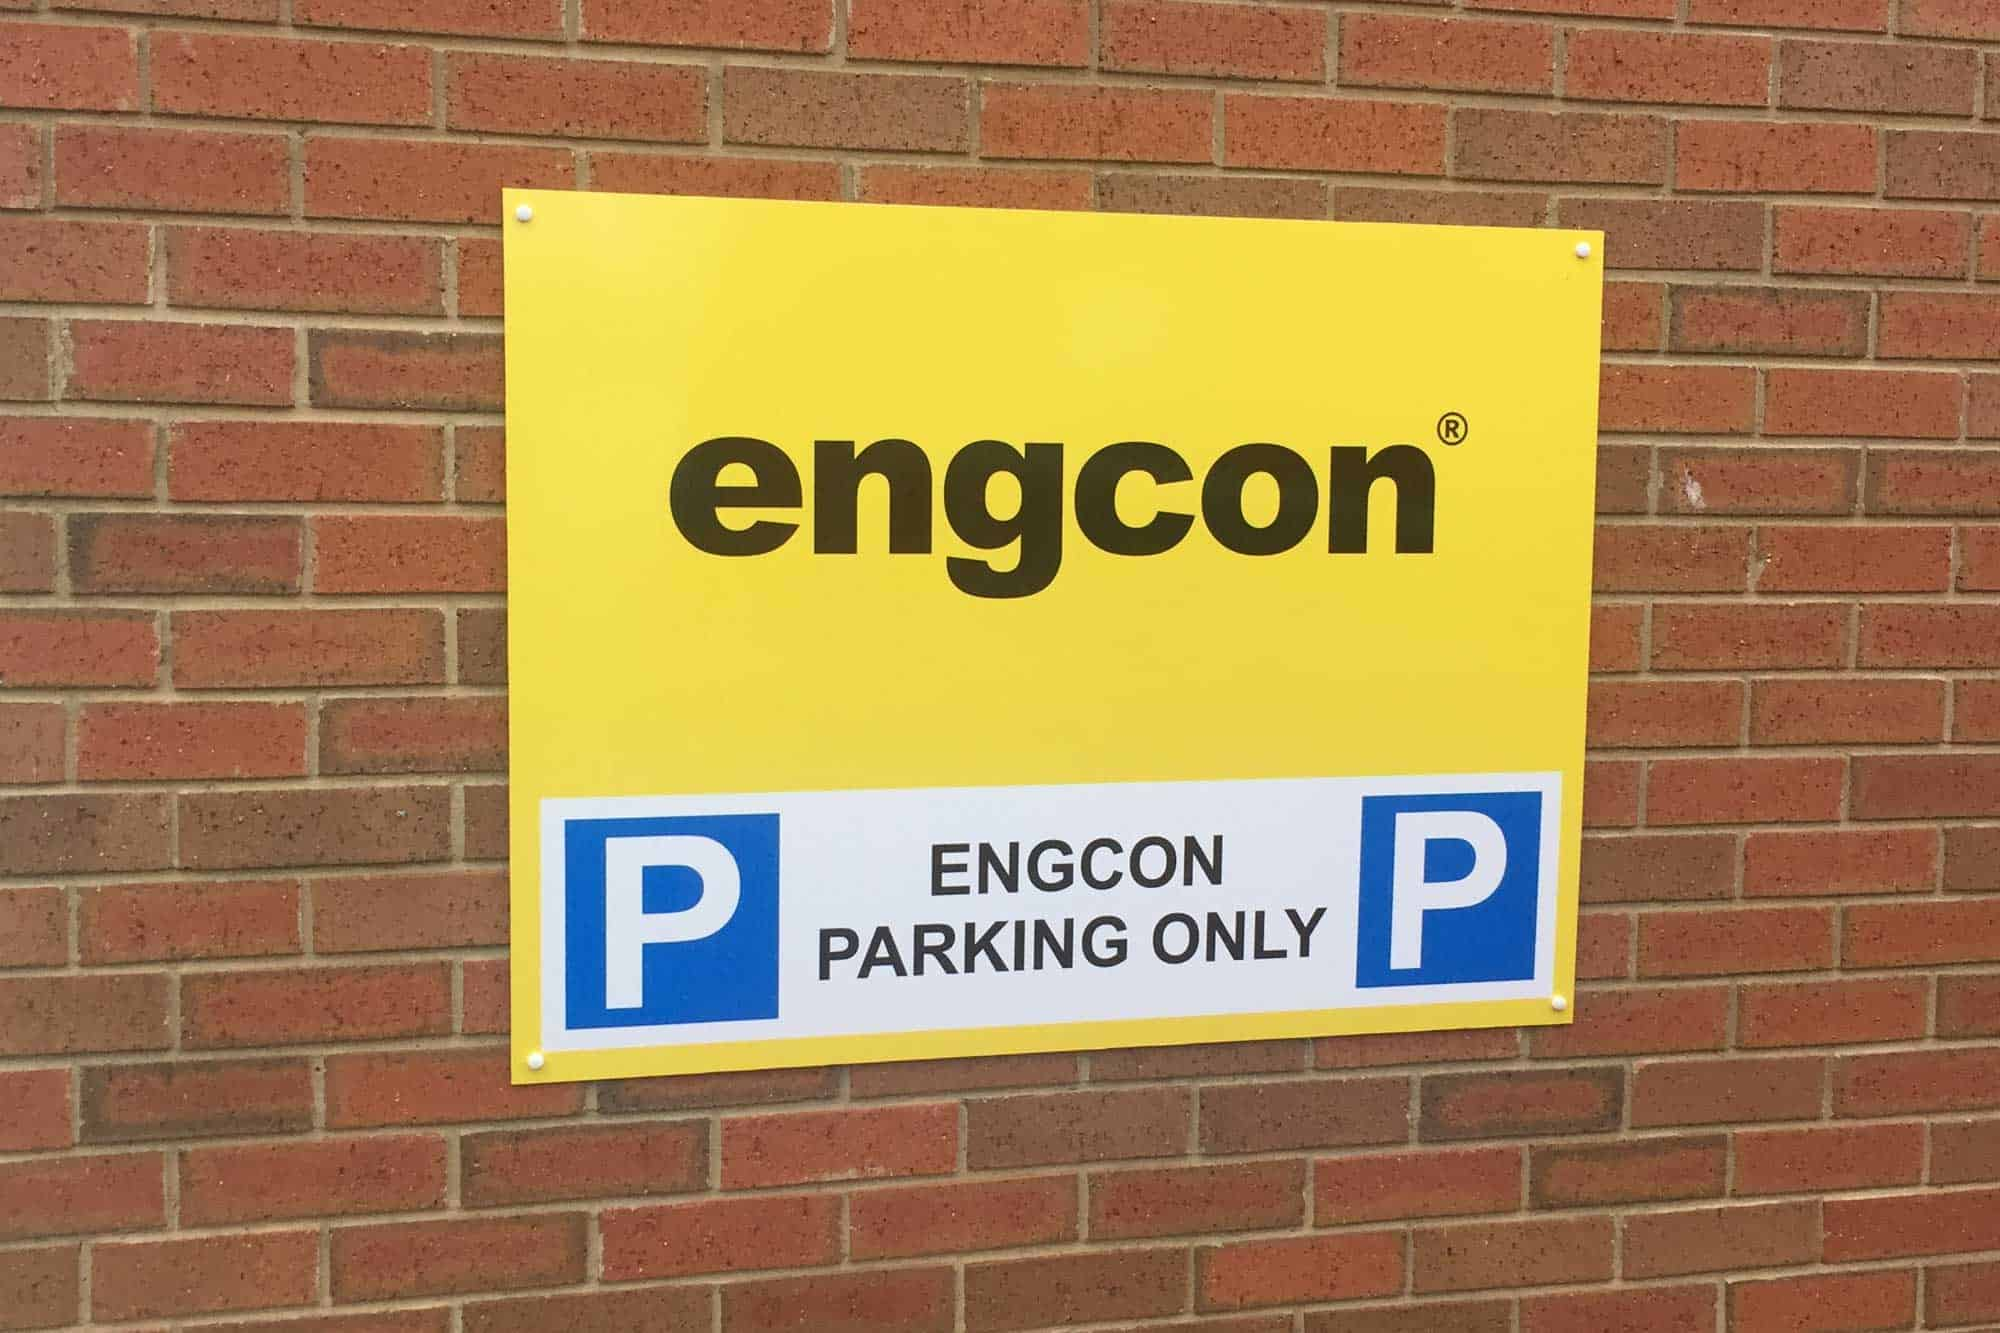 Industrial Estate parking sign